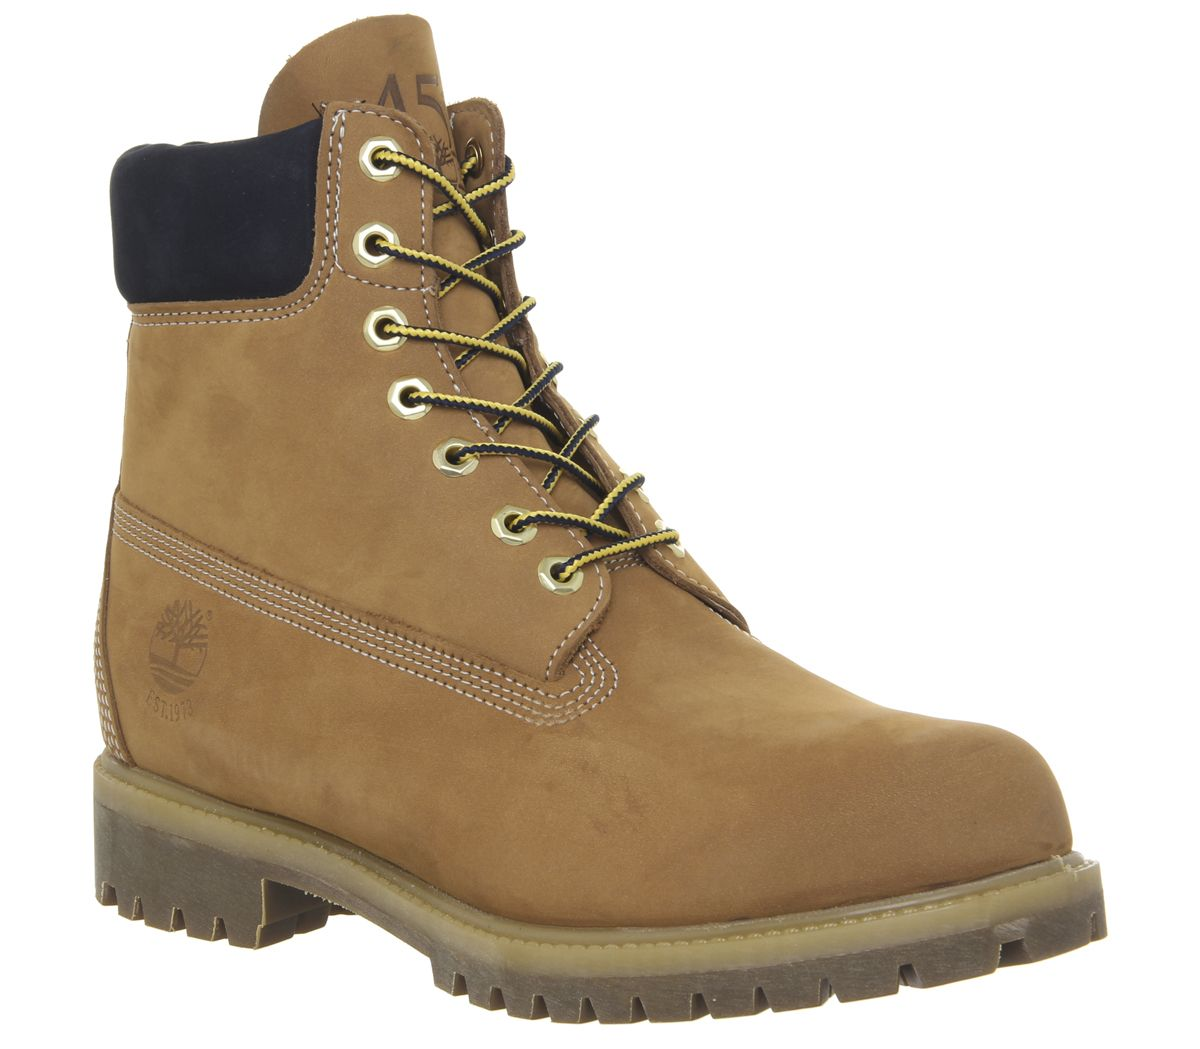 6bda6acefe Timberland 6 In Buck Boots 45th Anniversary Wheat - Boots